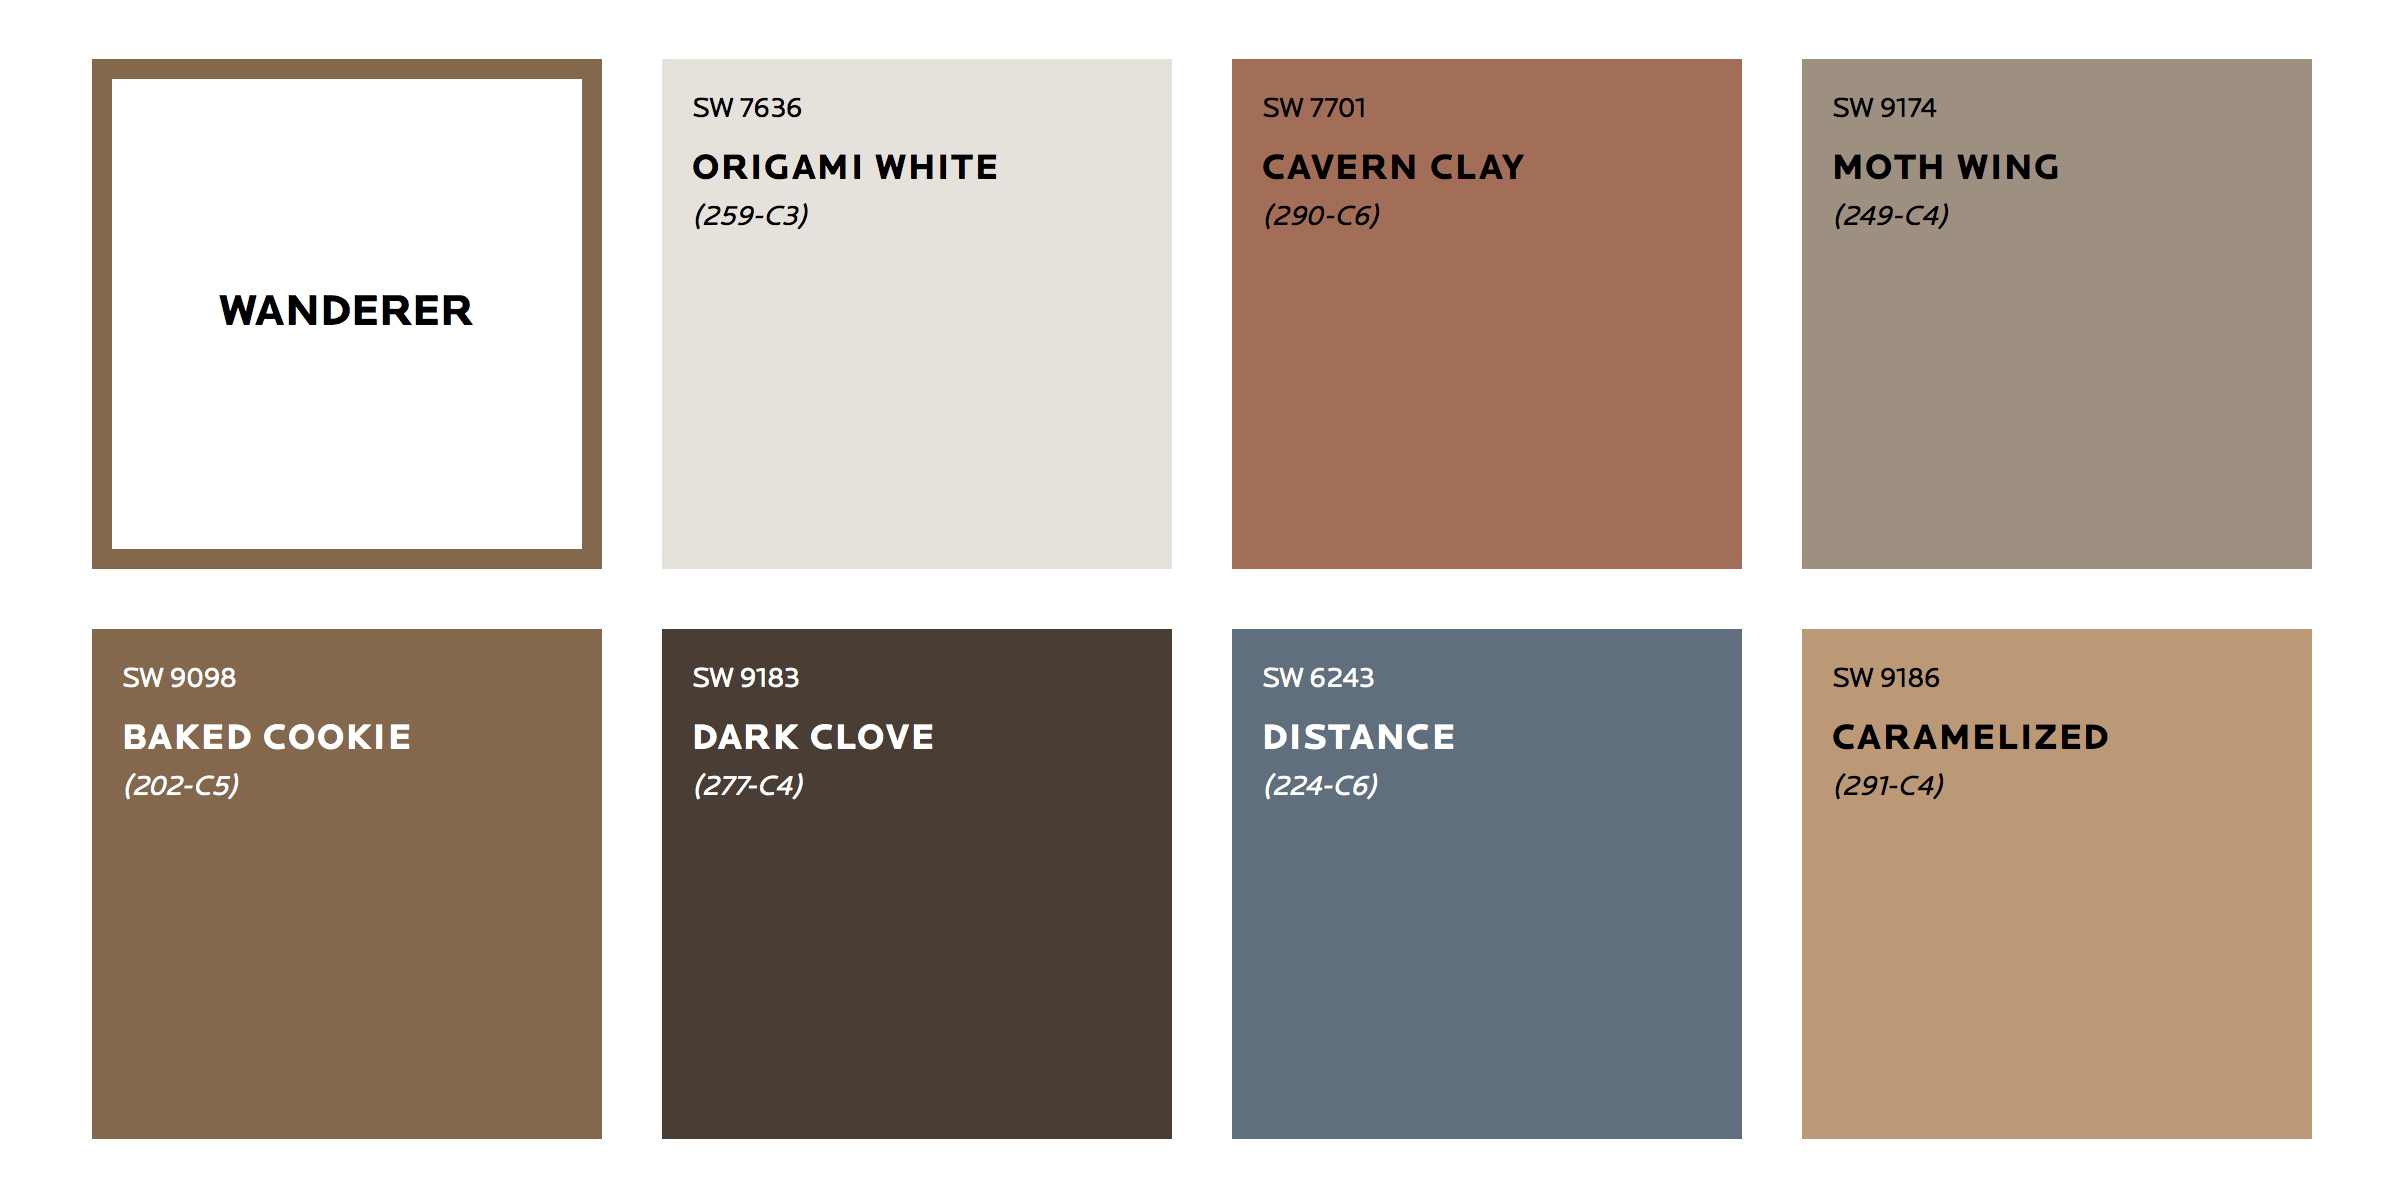 Find Out Here What Colors Are Trending In 2019 Calendar 2019 calendar Find Out Here Which Colors Are Trending In 2019 Calendar Find Out Here What Colors Are Trending In 2019 Calendar